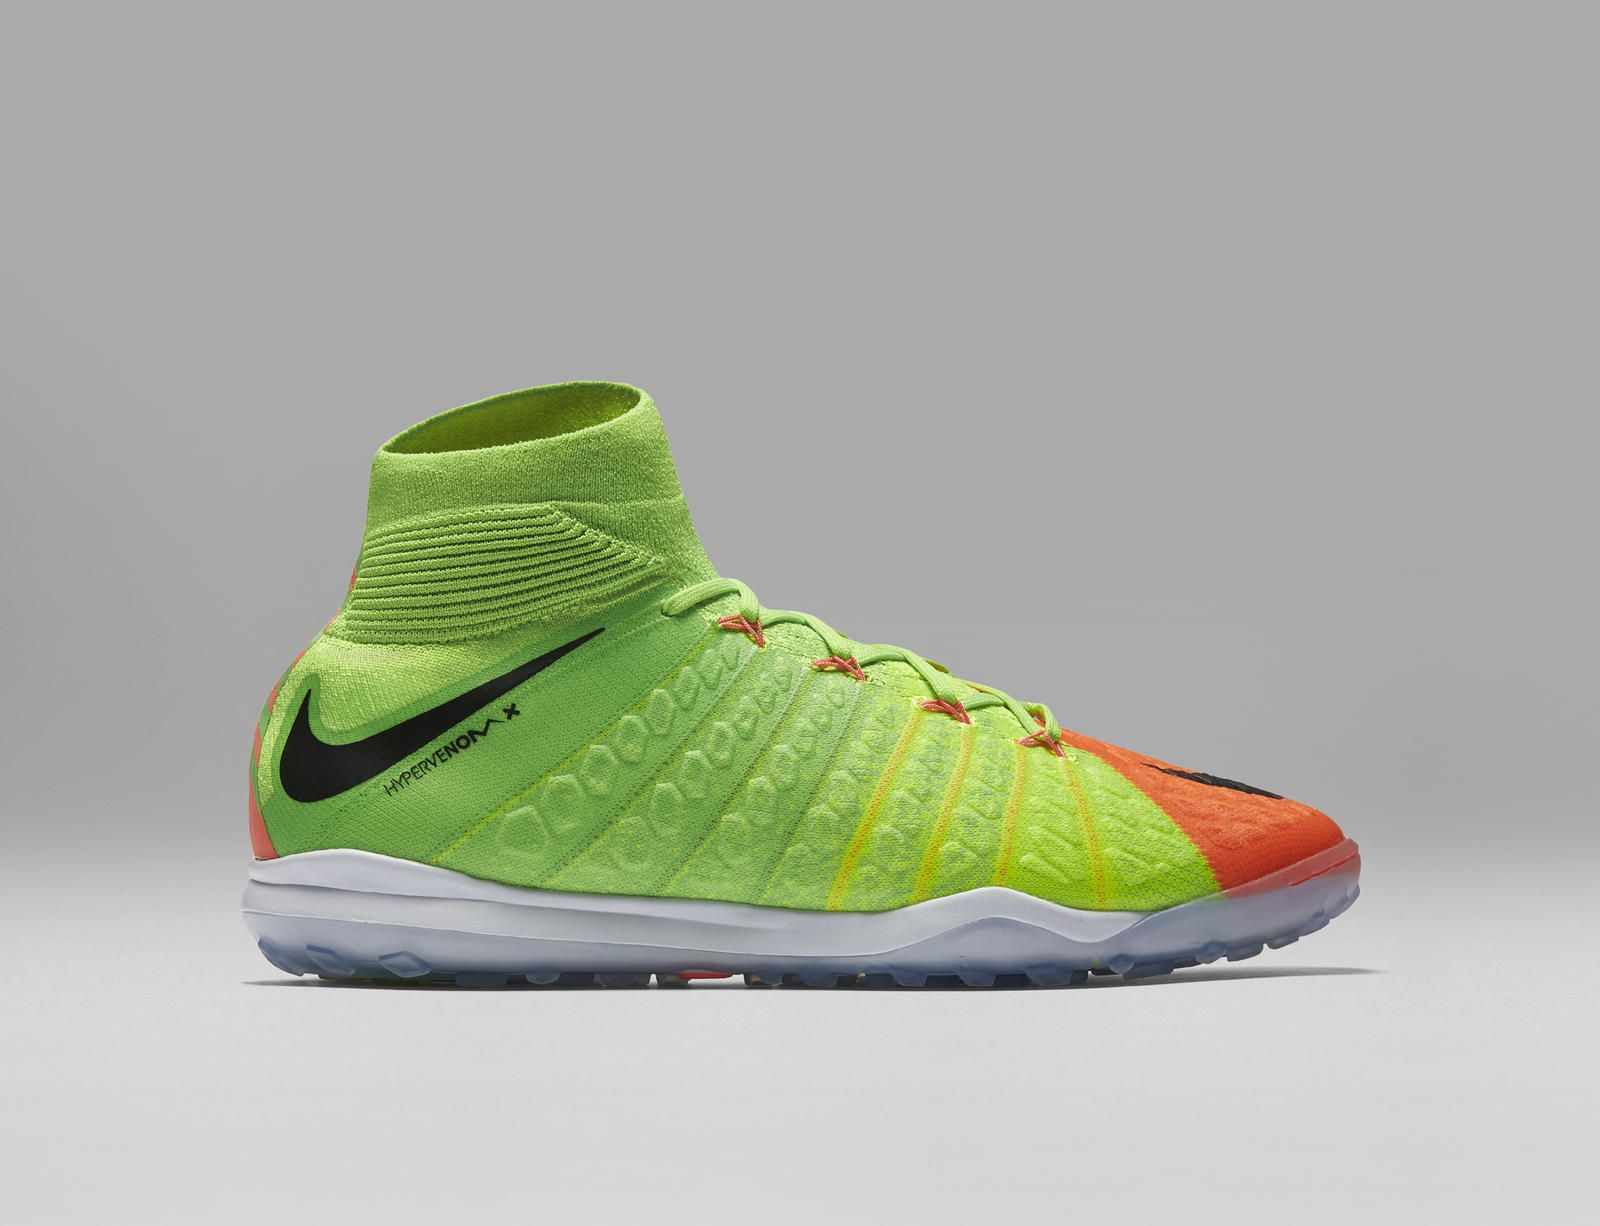 new arrival 57471 ac6b7 From sketch to scoring machine, Nike unveils the new Hypervenom 3. The boot  will be available January 30 on Nike.com in the Poison Green Hyper Orange  ...